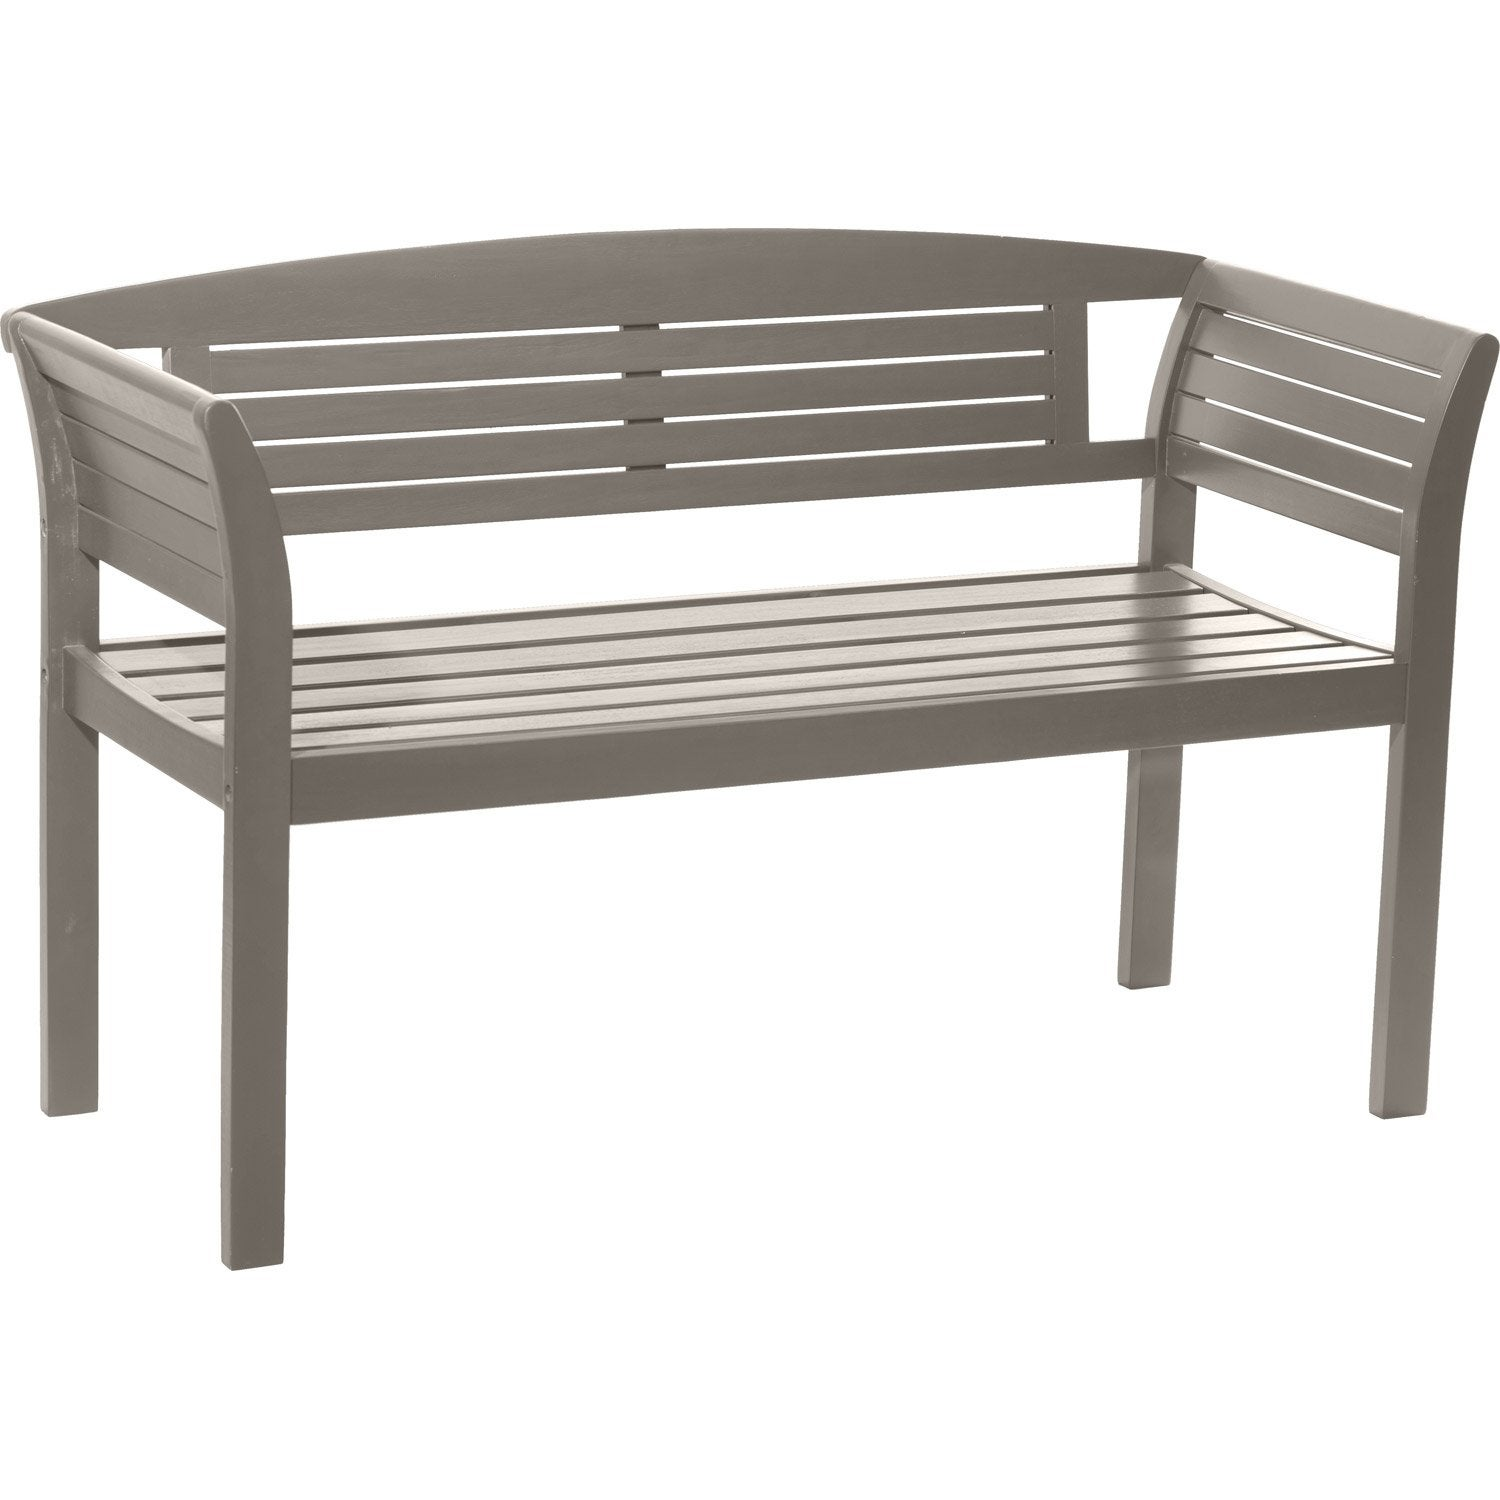 Banc 2 places de jardin en bois new york r glisse leroy merlin for Banc de jardin square